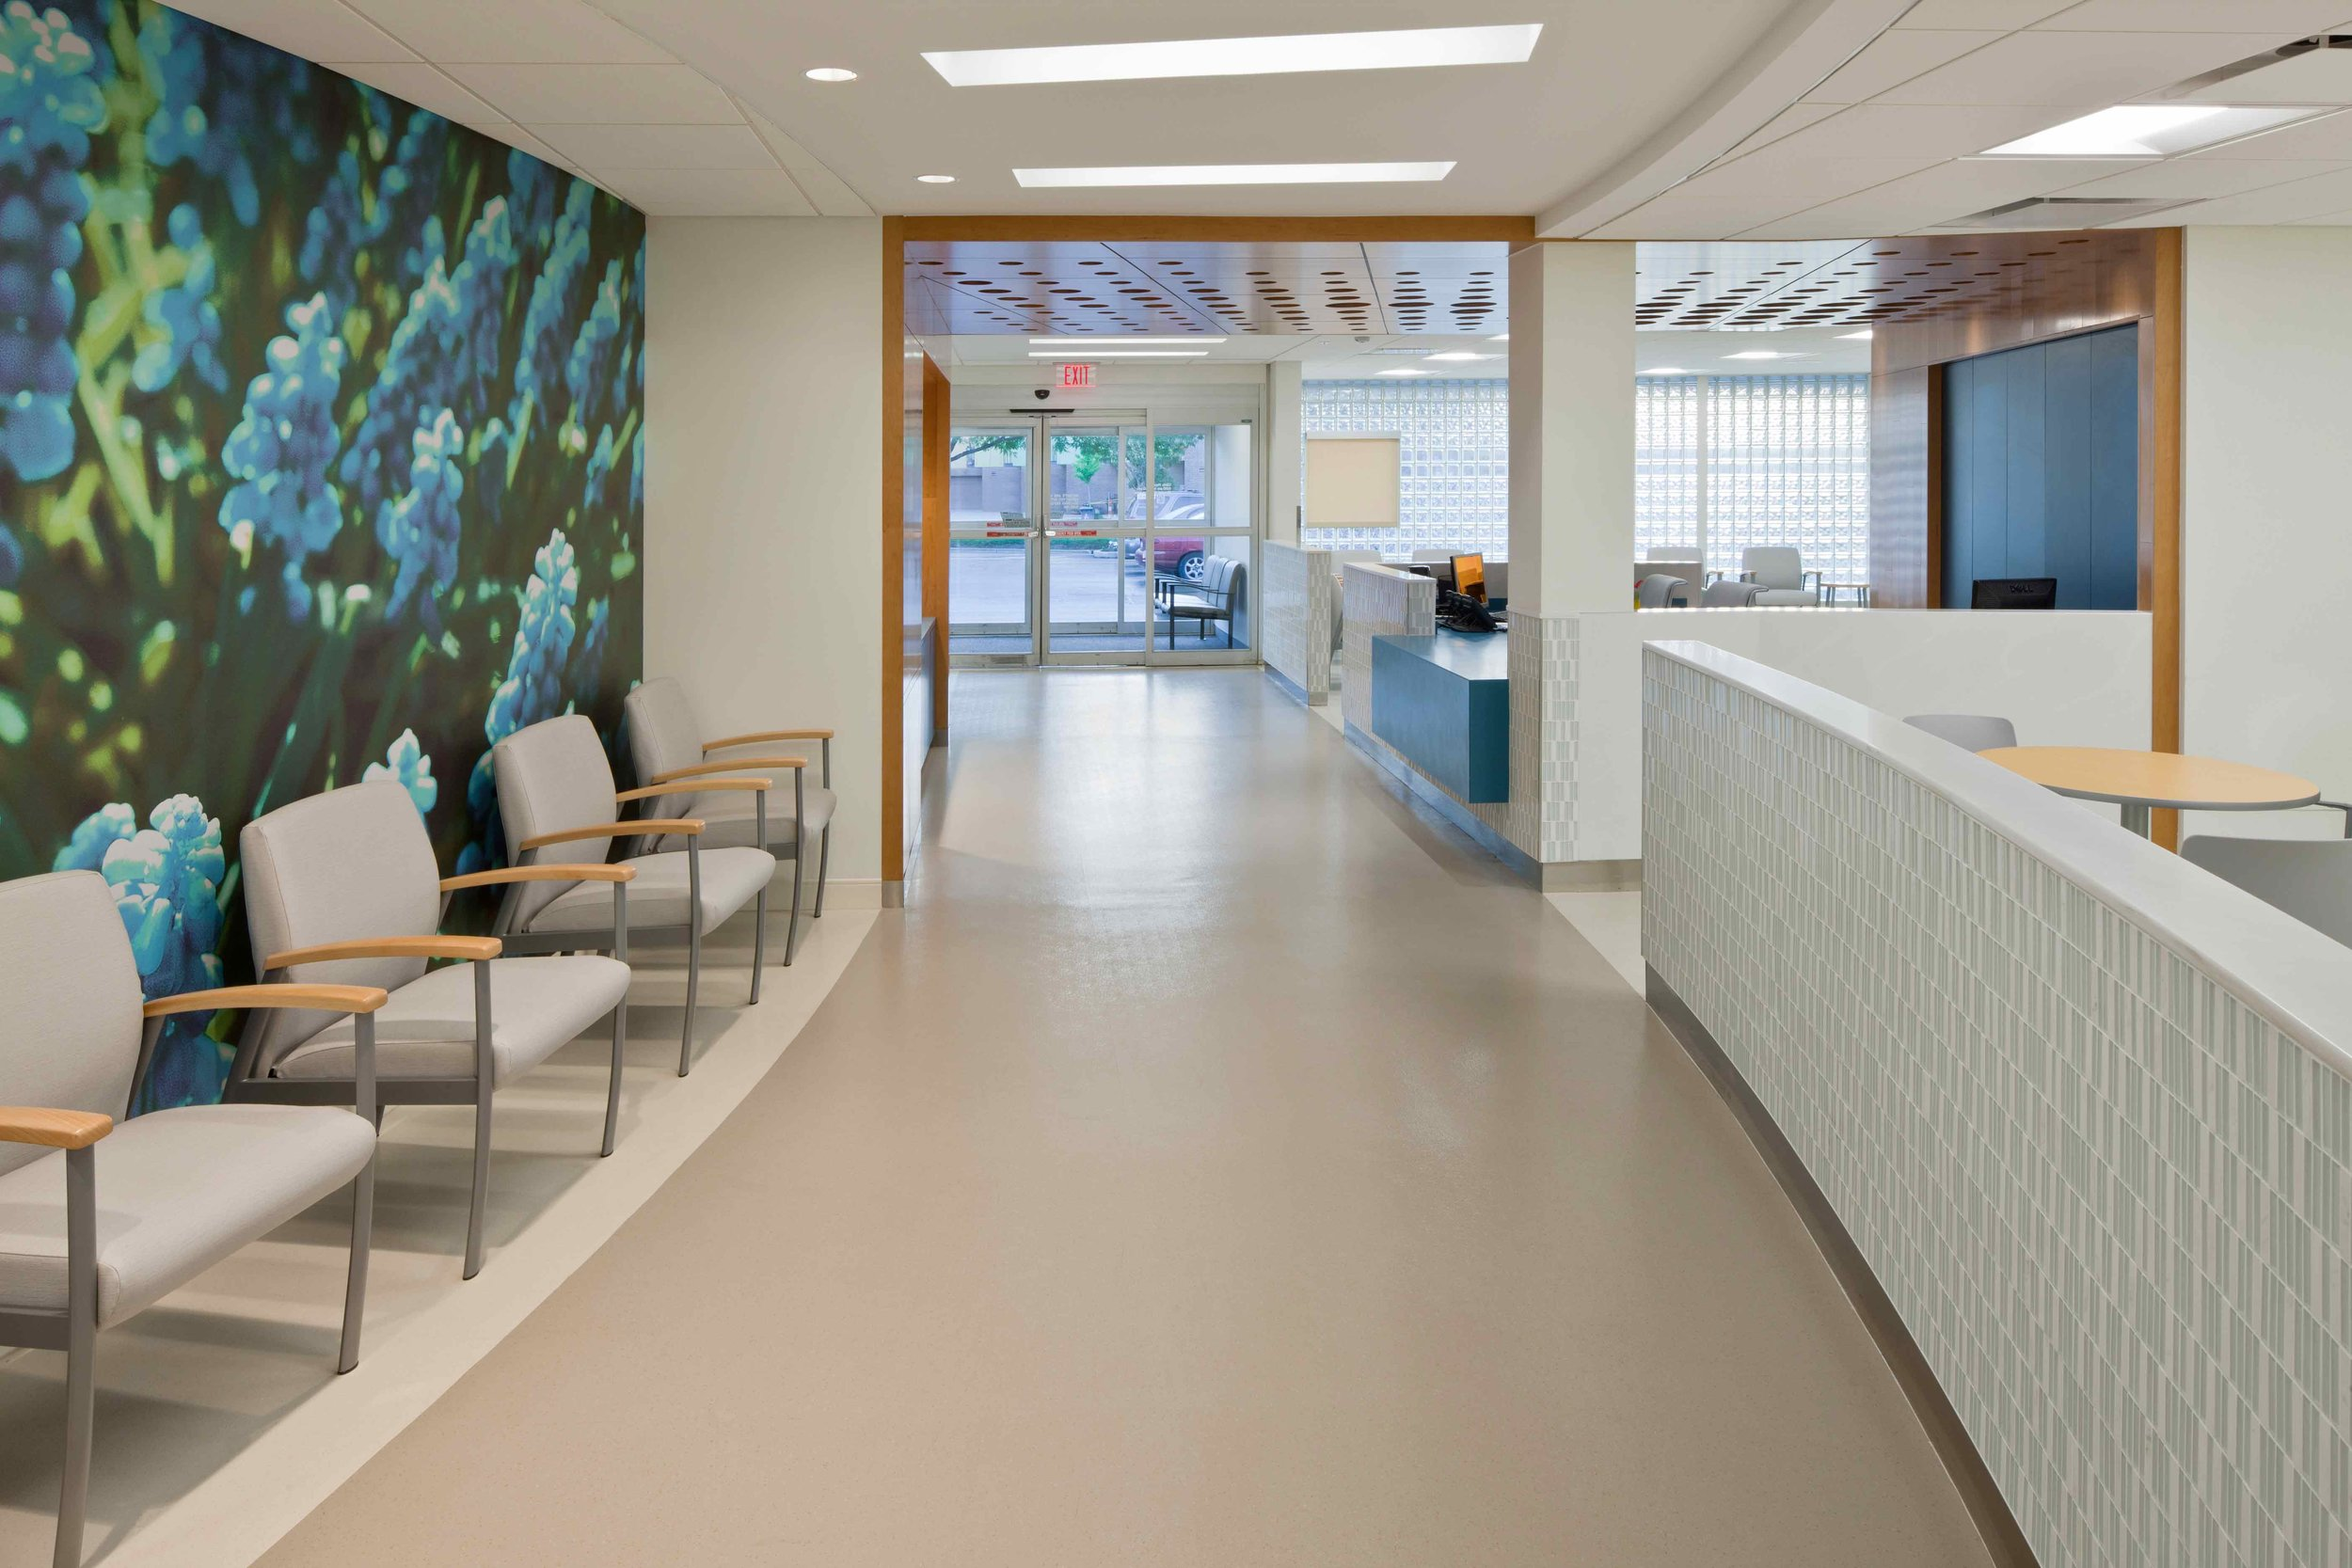 CENTERS FOR DIALYSIS CARE, EAST LOBBY RENOVATION